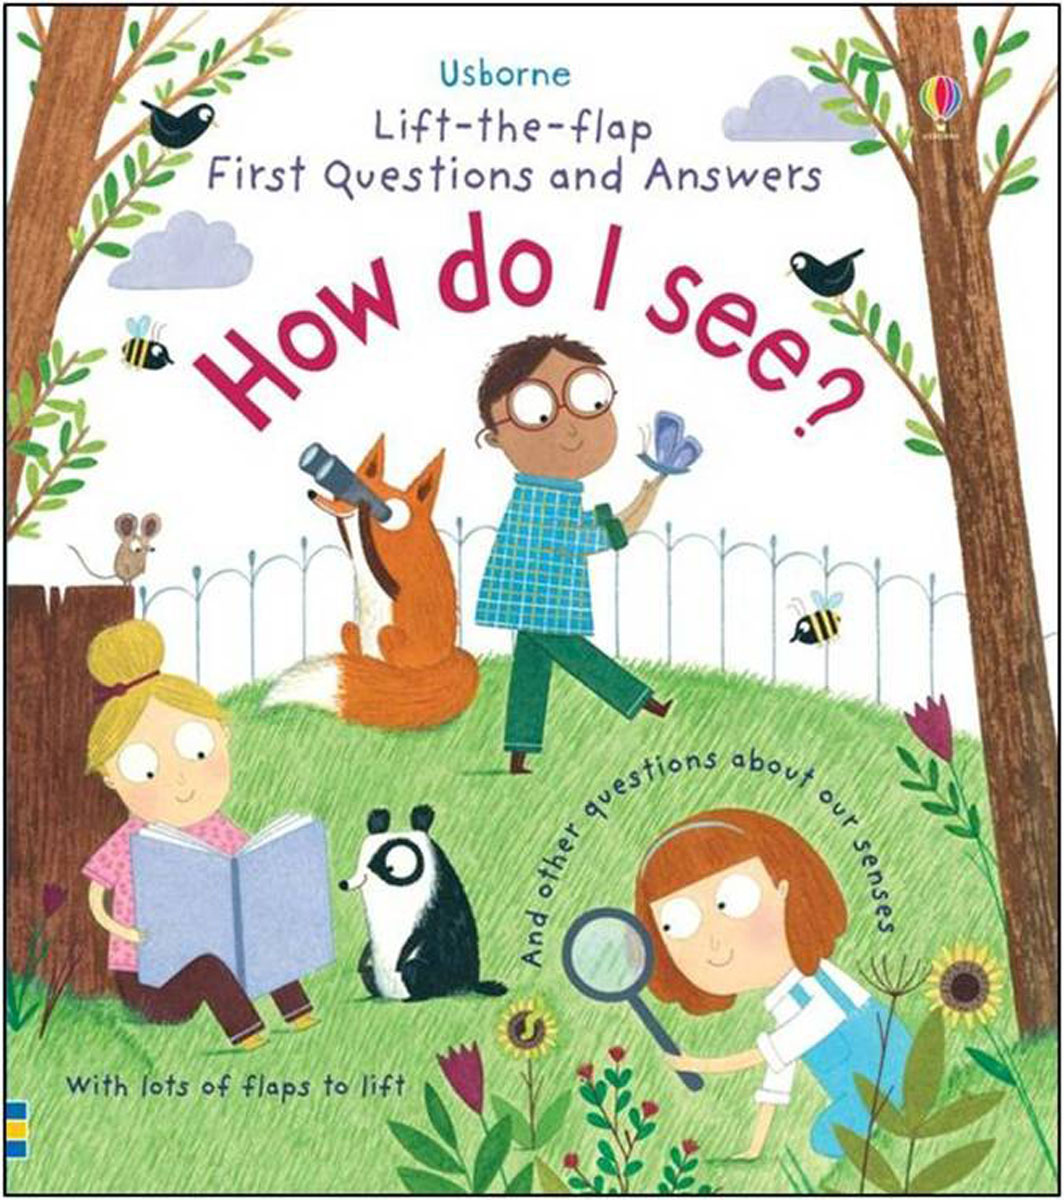 Lift-the-Flap First Questions & Answers: How do I see? games [a2 b1] questions and answers